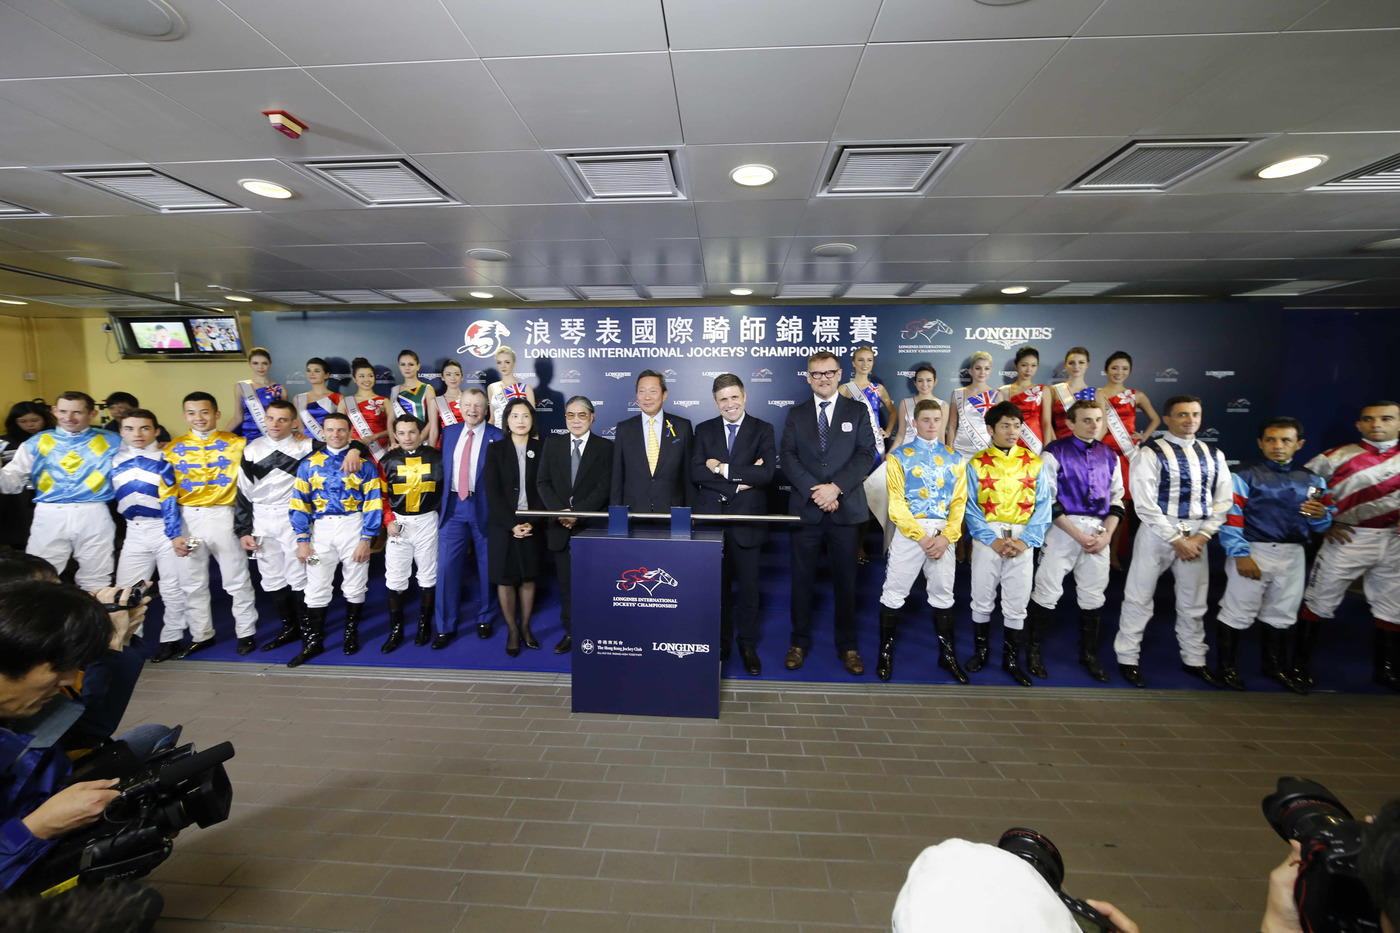 Longines Flat Racing Event: The Longines International Jockeys' Championship 2015: The battle of the world's best jockeys 4